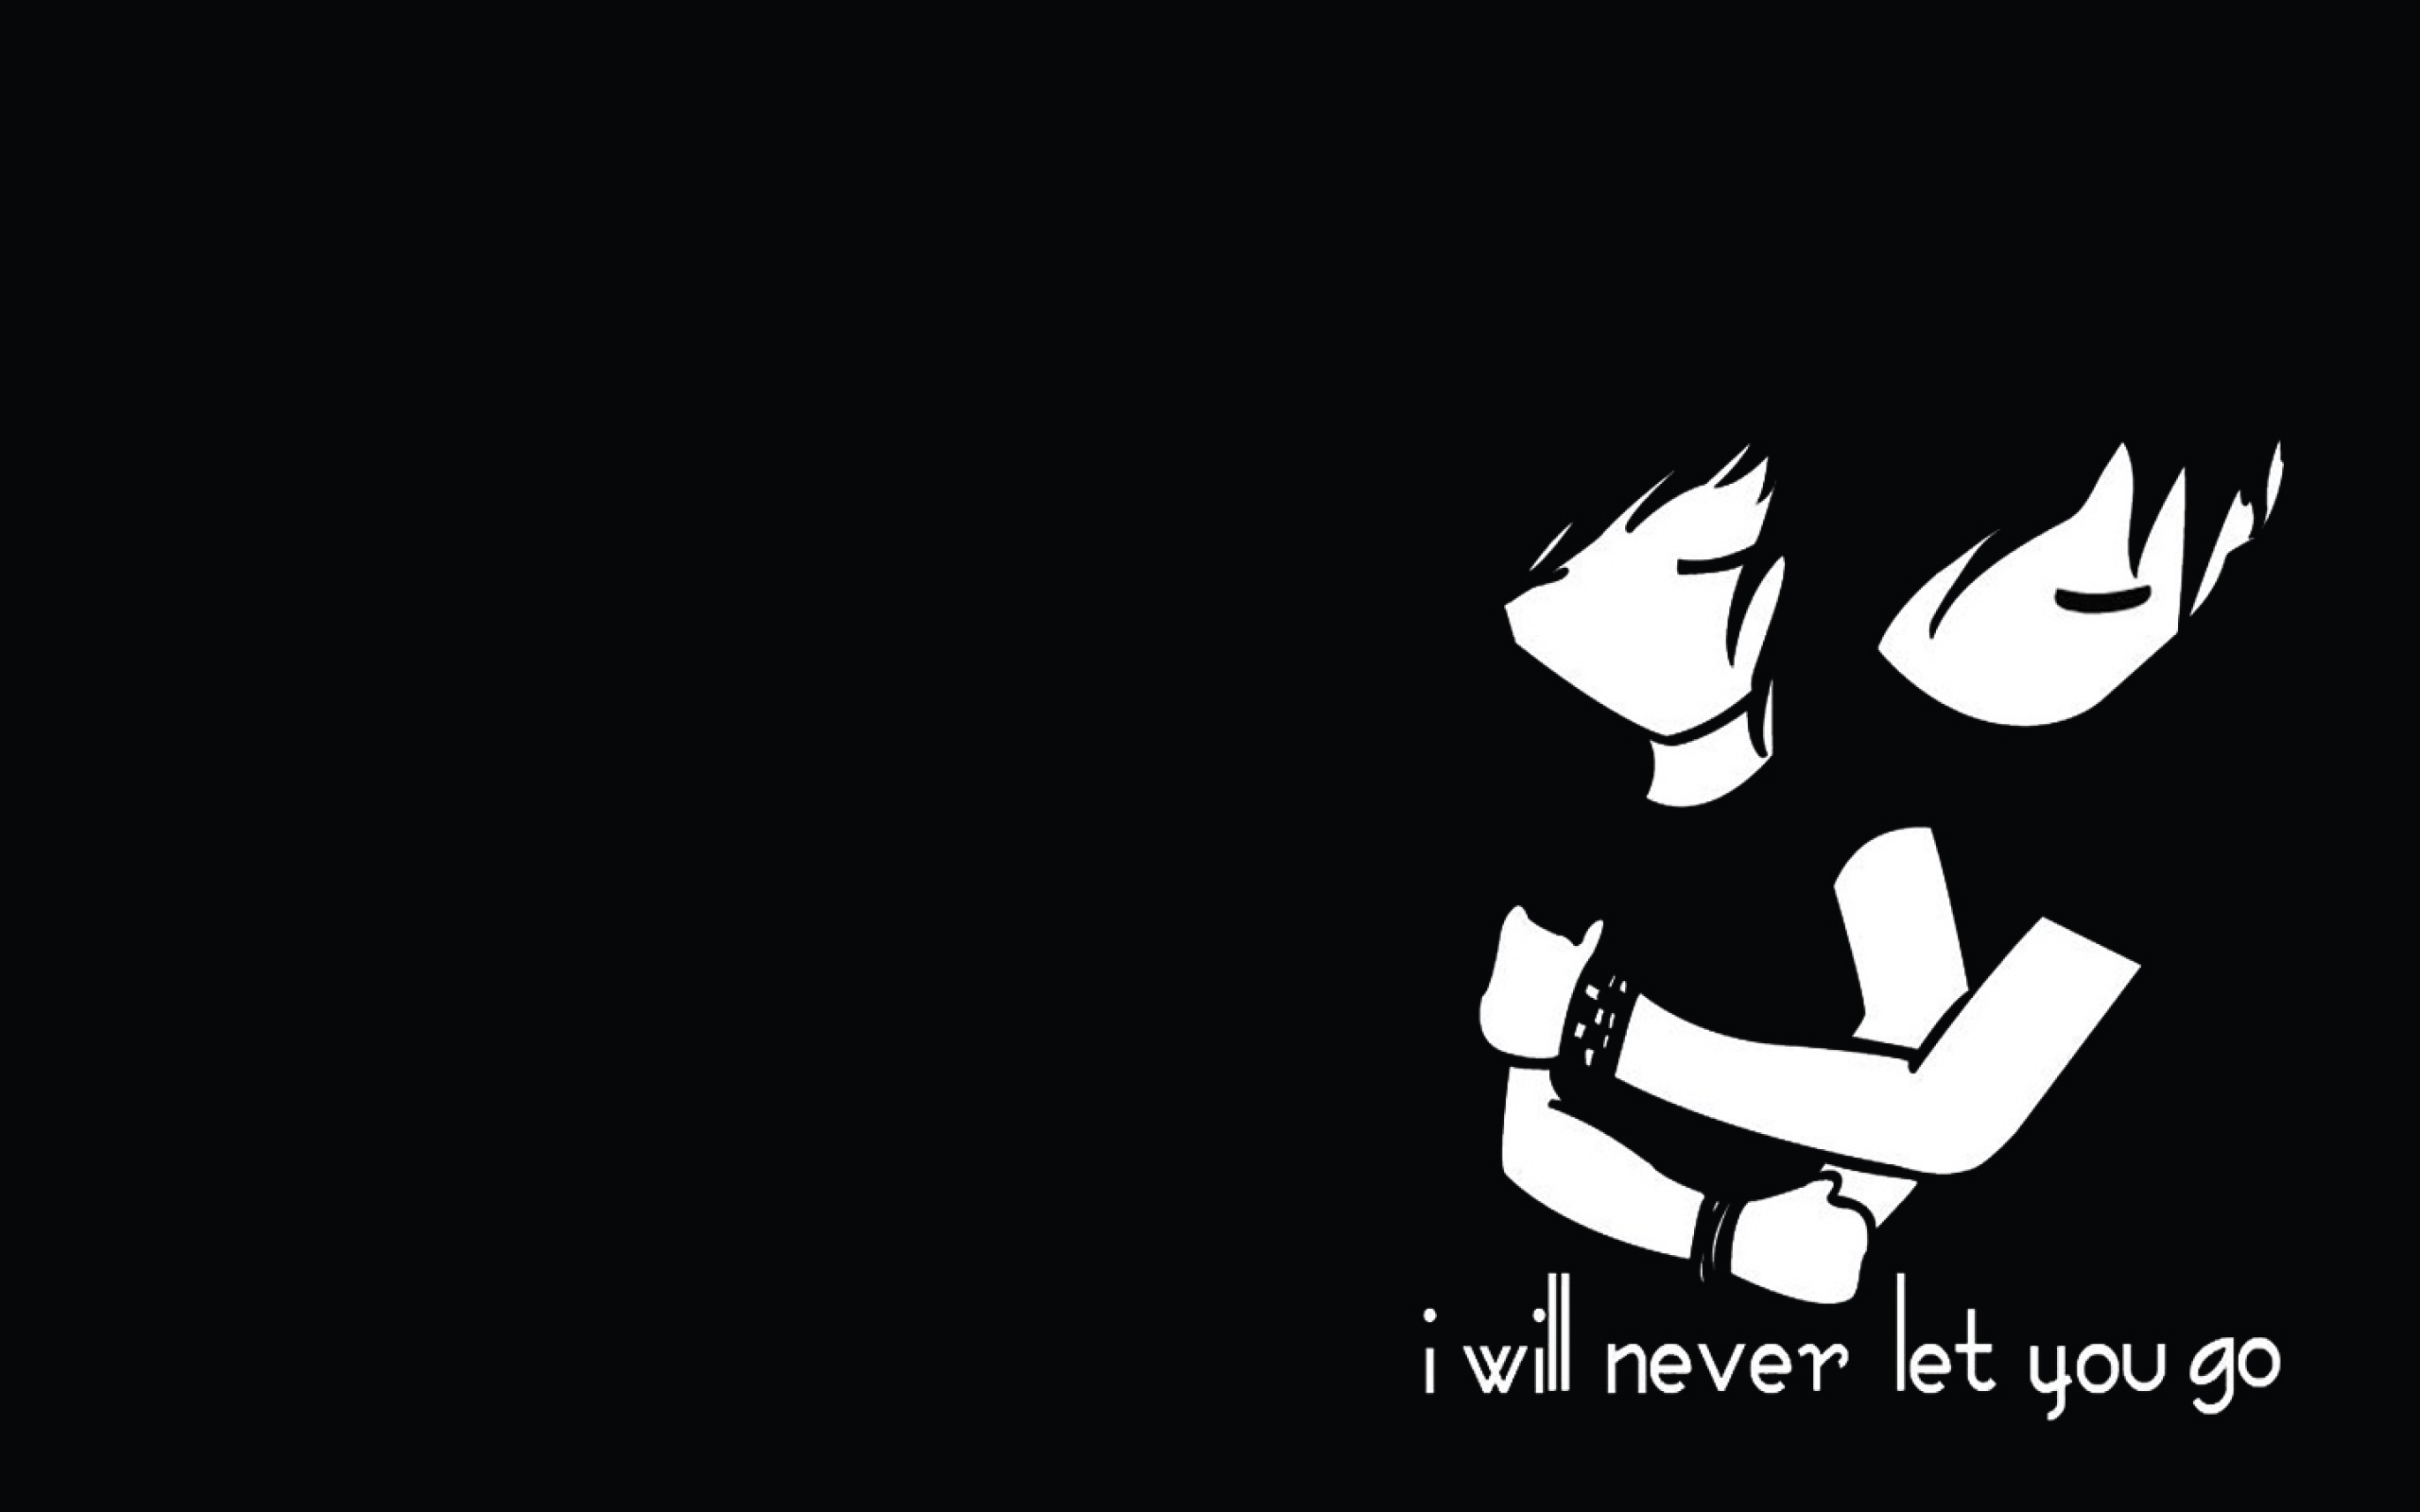 Emo Love Quotes #7019176 - The best wallpapers collection ...